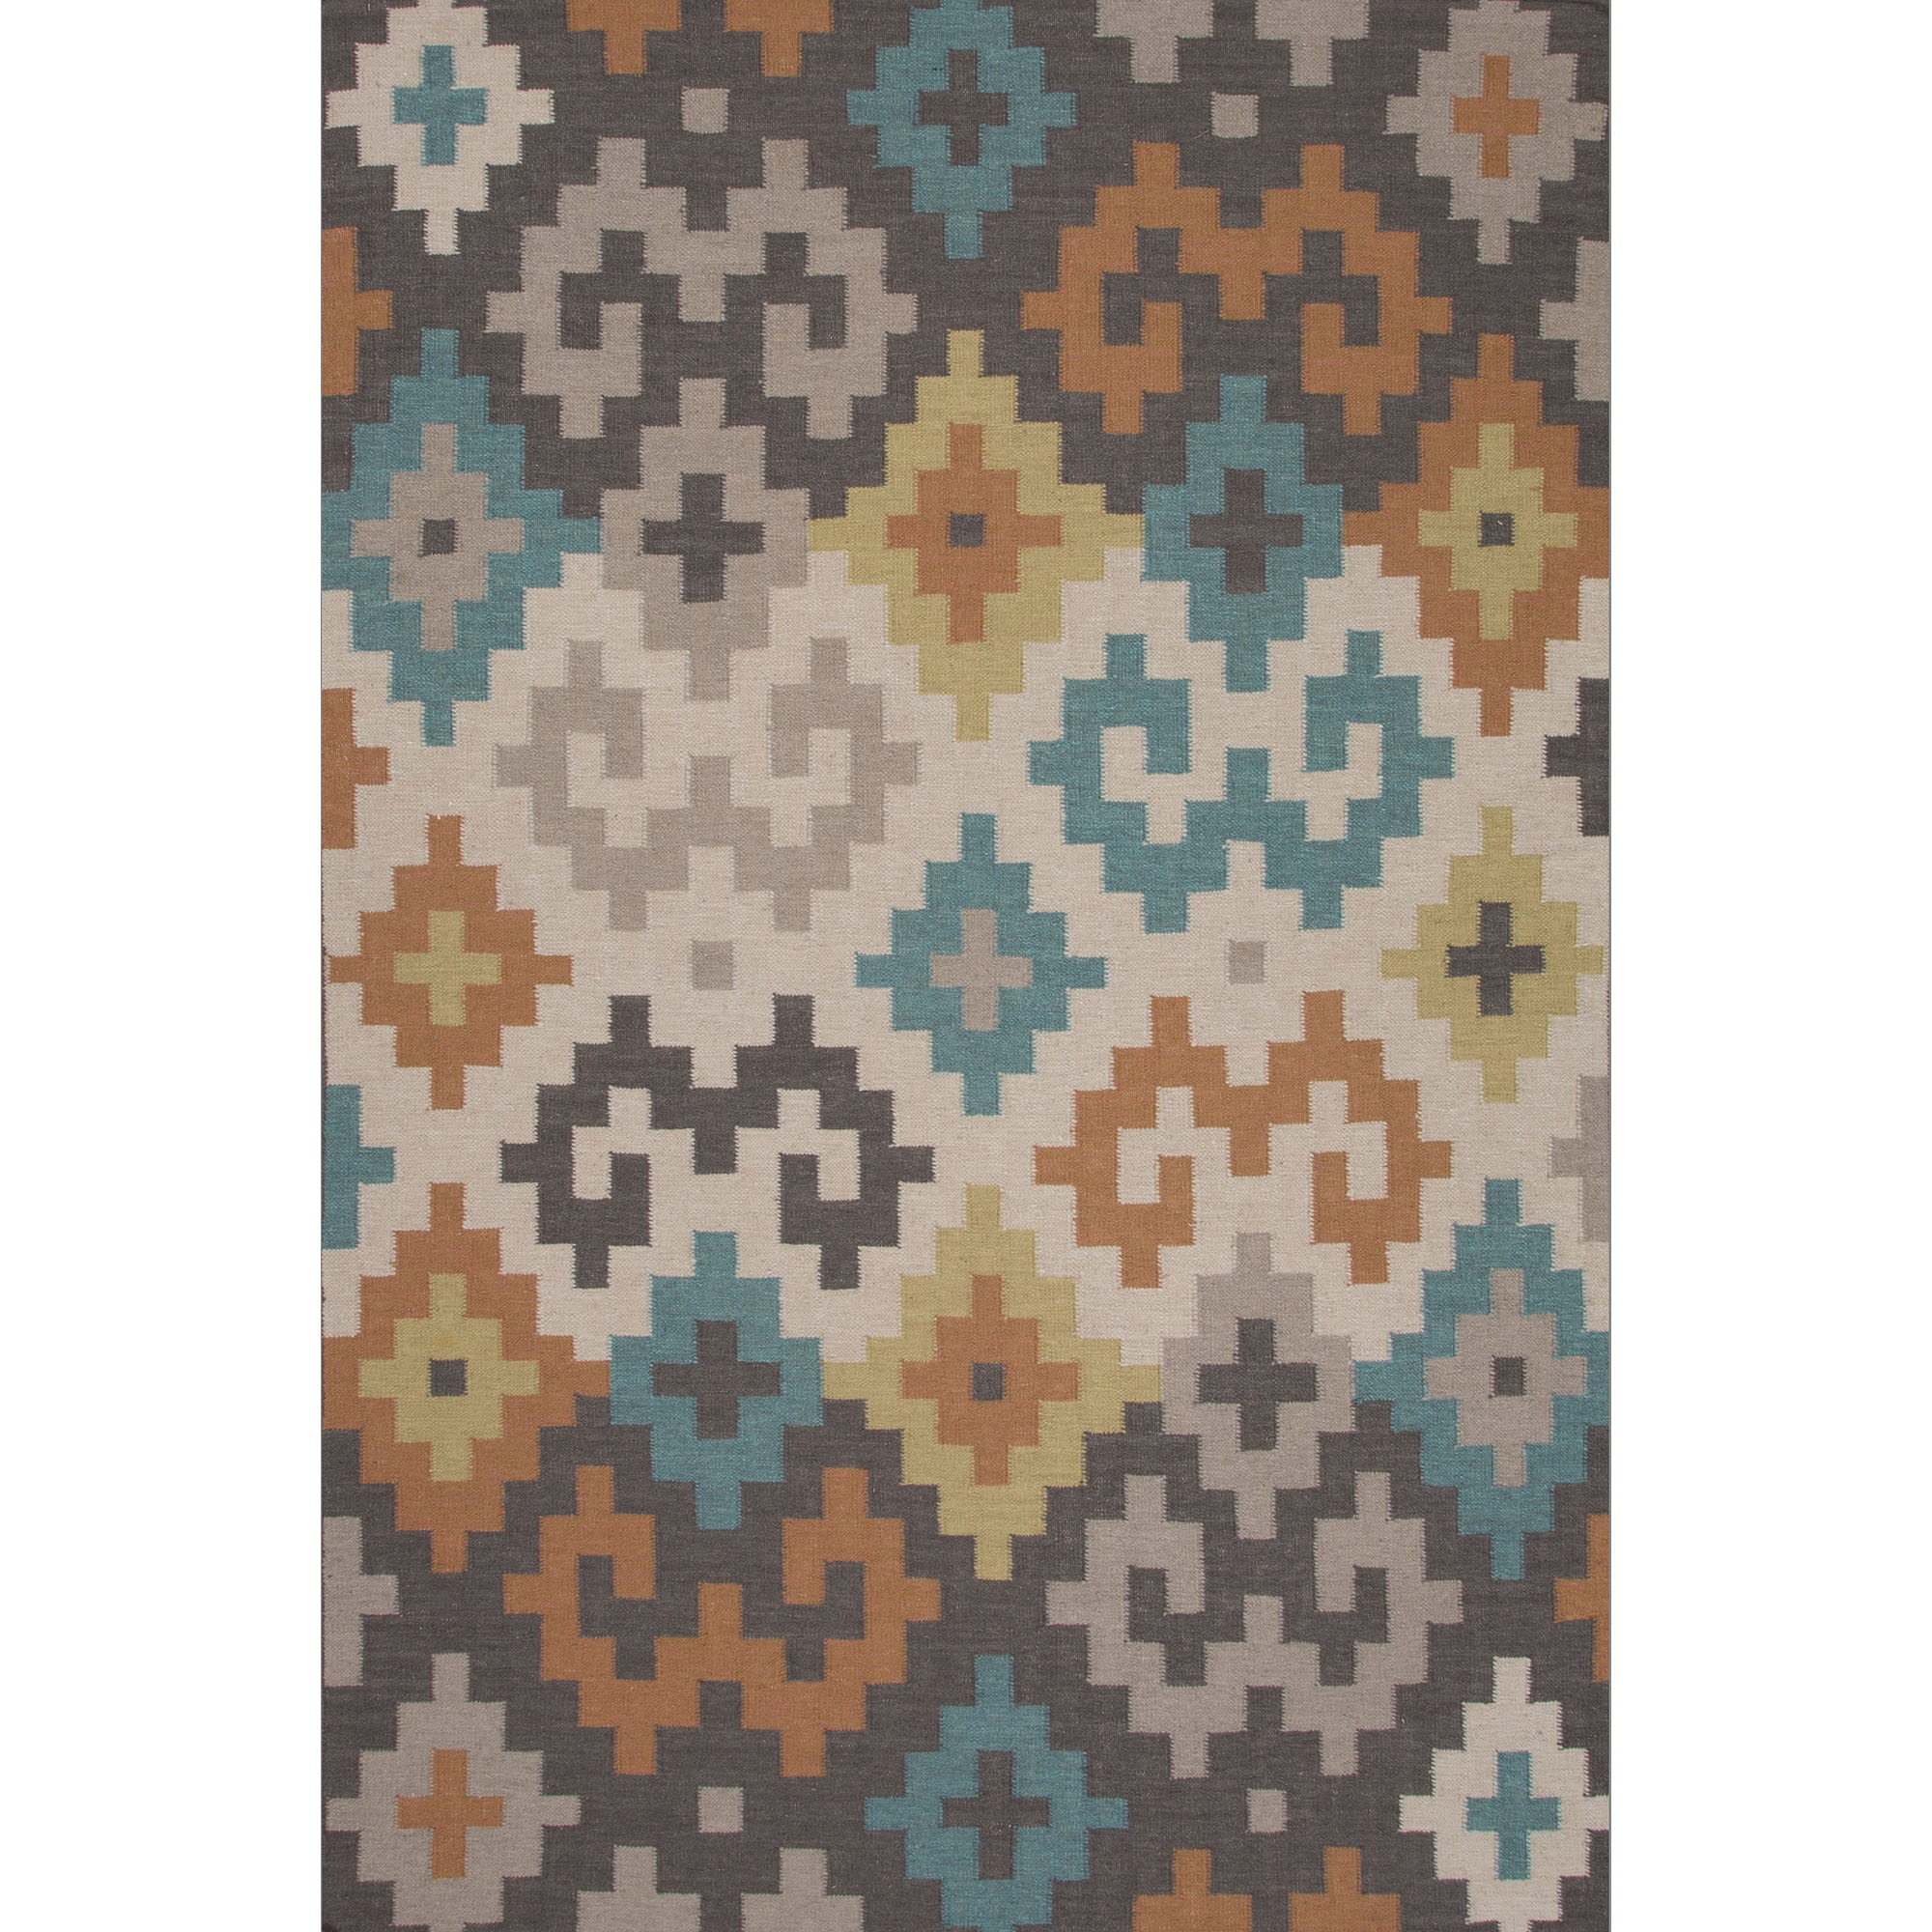 Traditions Modern Flat Weave 8 x 11 Rug by JAIPUR Living at Sprintz Furniture